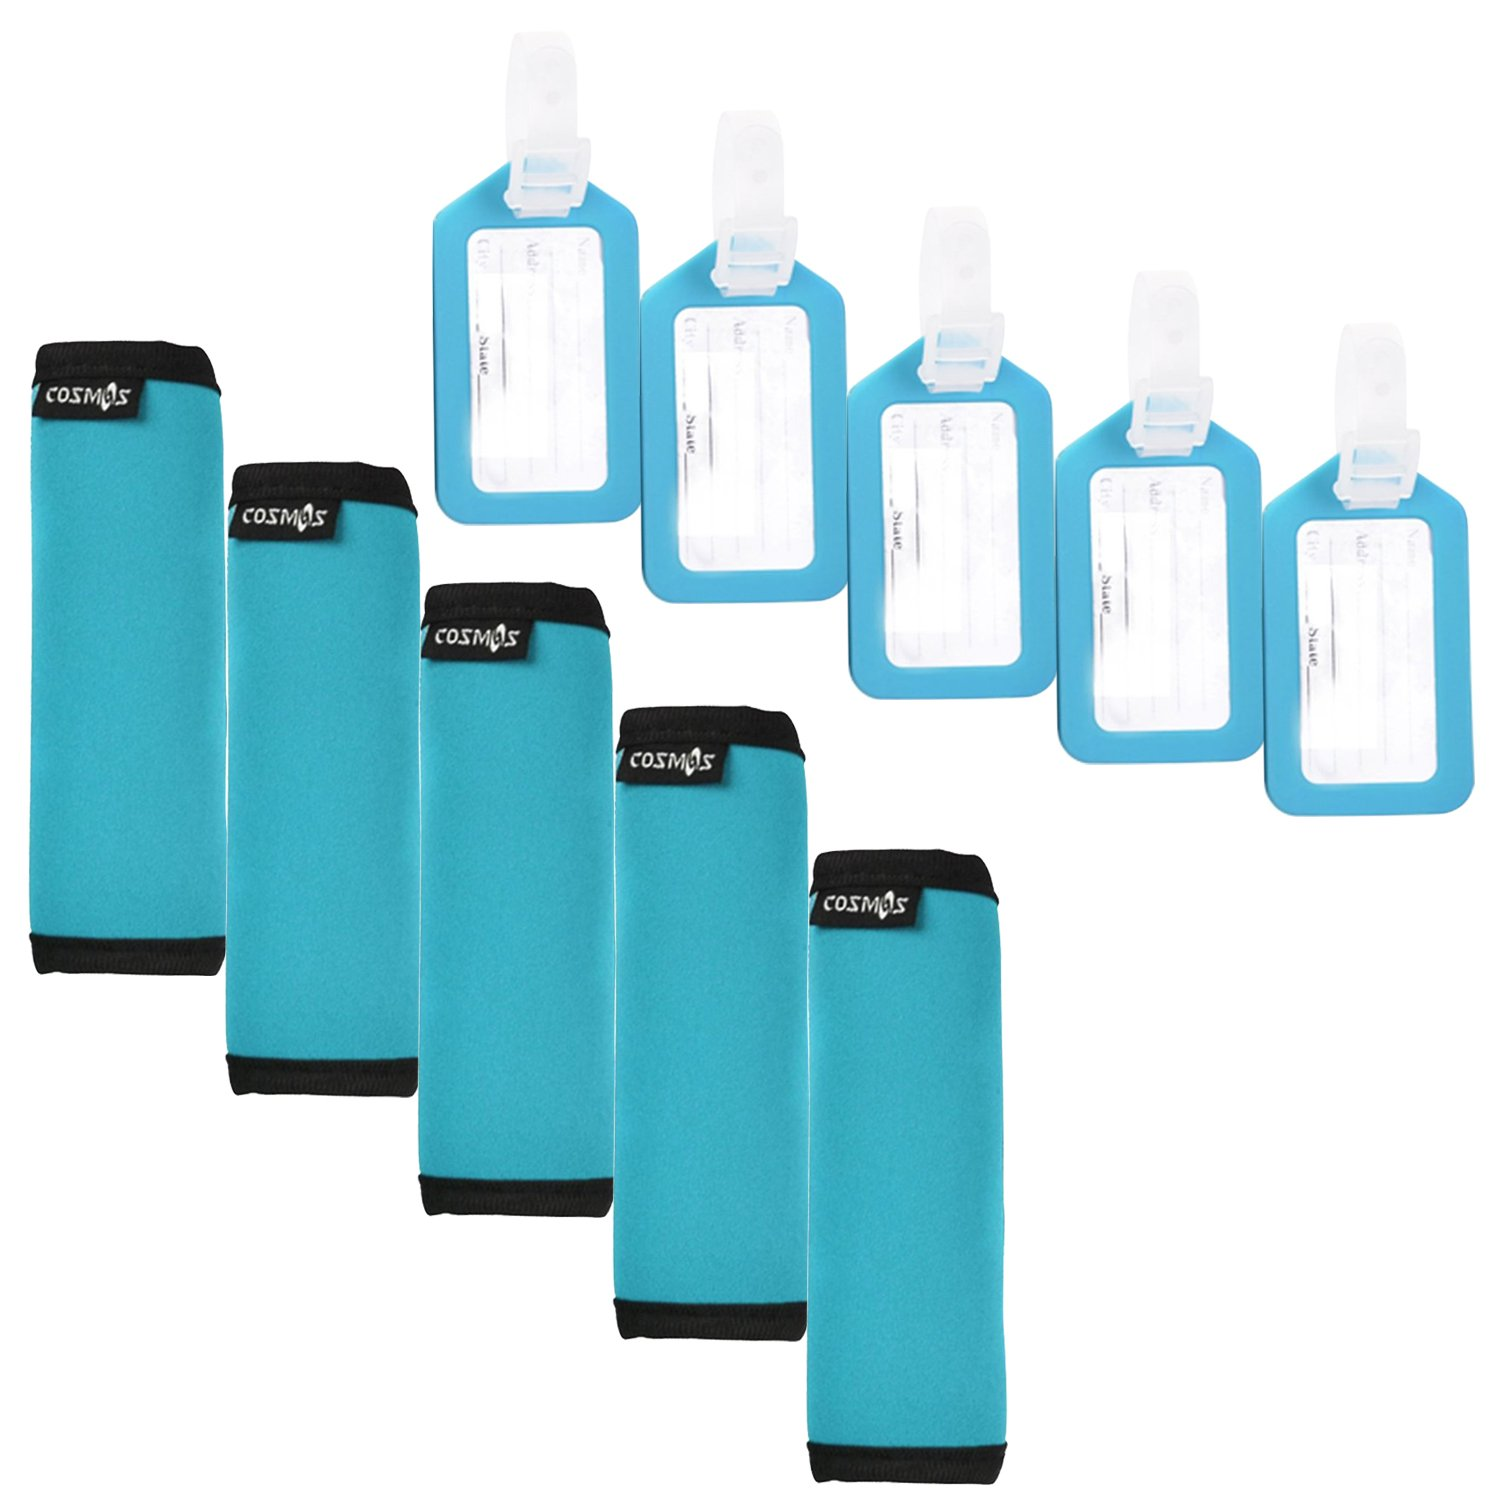 Cosmos ® 5 PCS Comfort Neoprene Handle Wraps/Grip /Identifier for Travel Bag Luggage Suitcase + 5 PCS Travel Accessories Luggage Tag Identifier (Aqua Blue) 58397